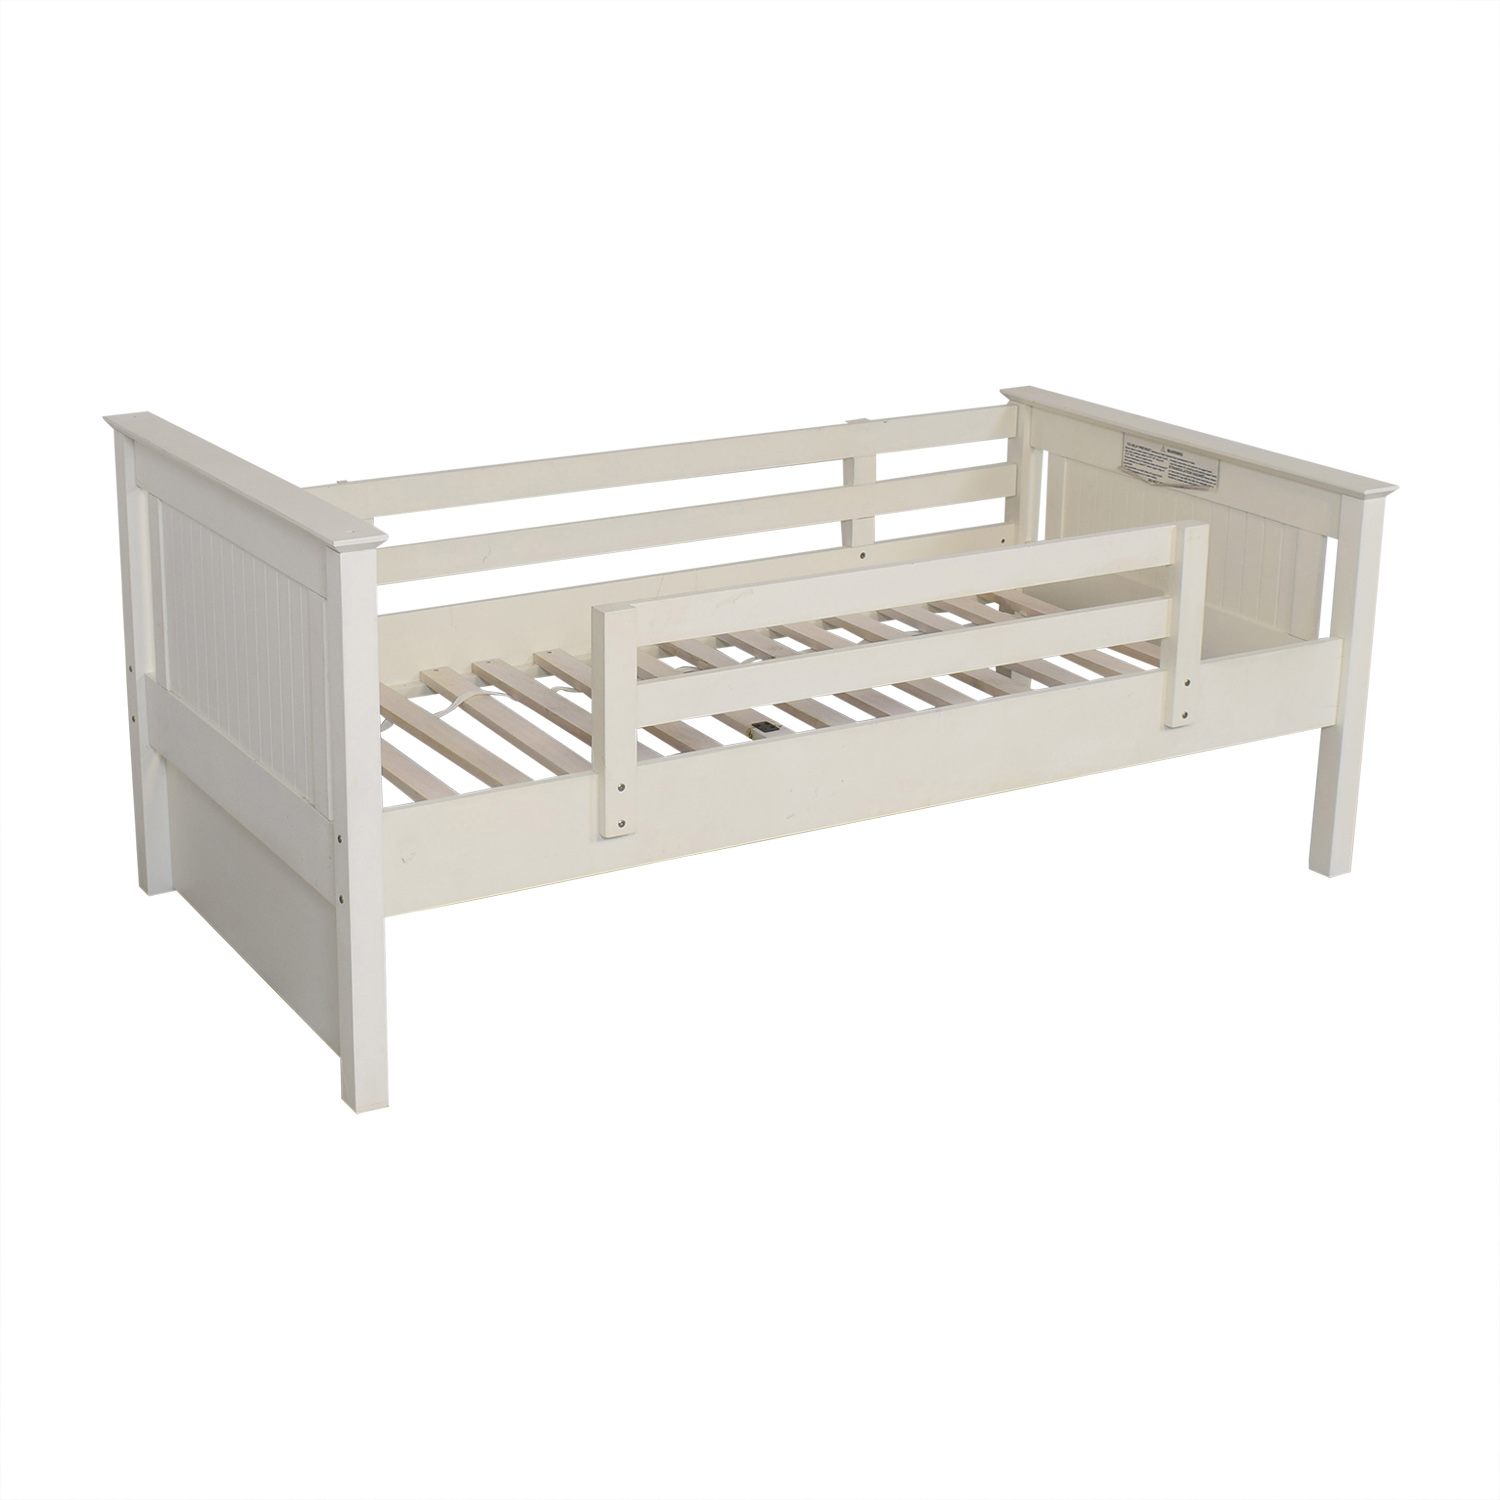 Epoch Design Epoch Design Twin Bed with Protective Rail for sale